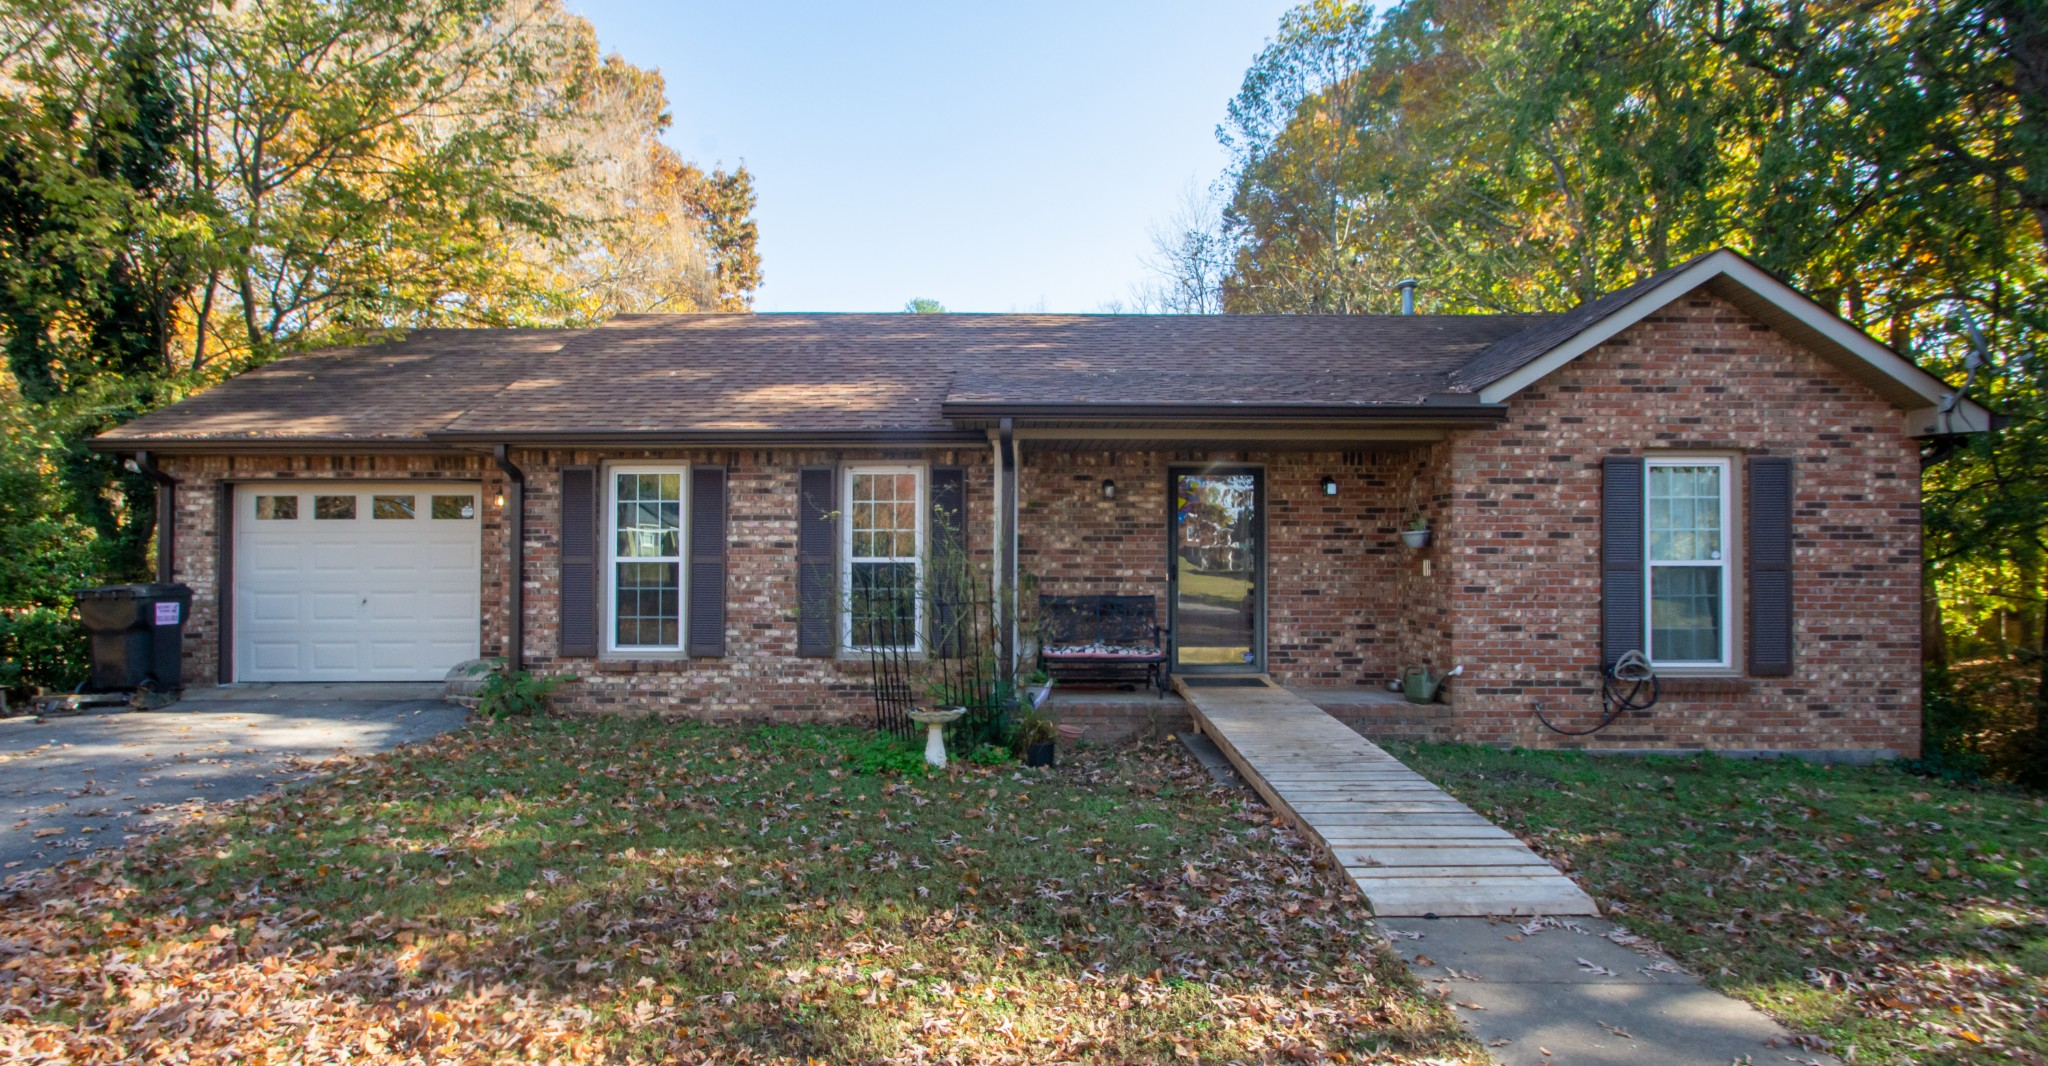 217 Maxwell Dr Property Photo - Clarksville, TN real estate listing